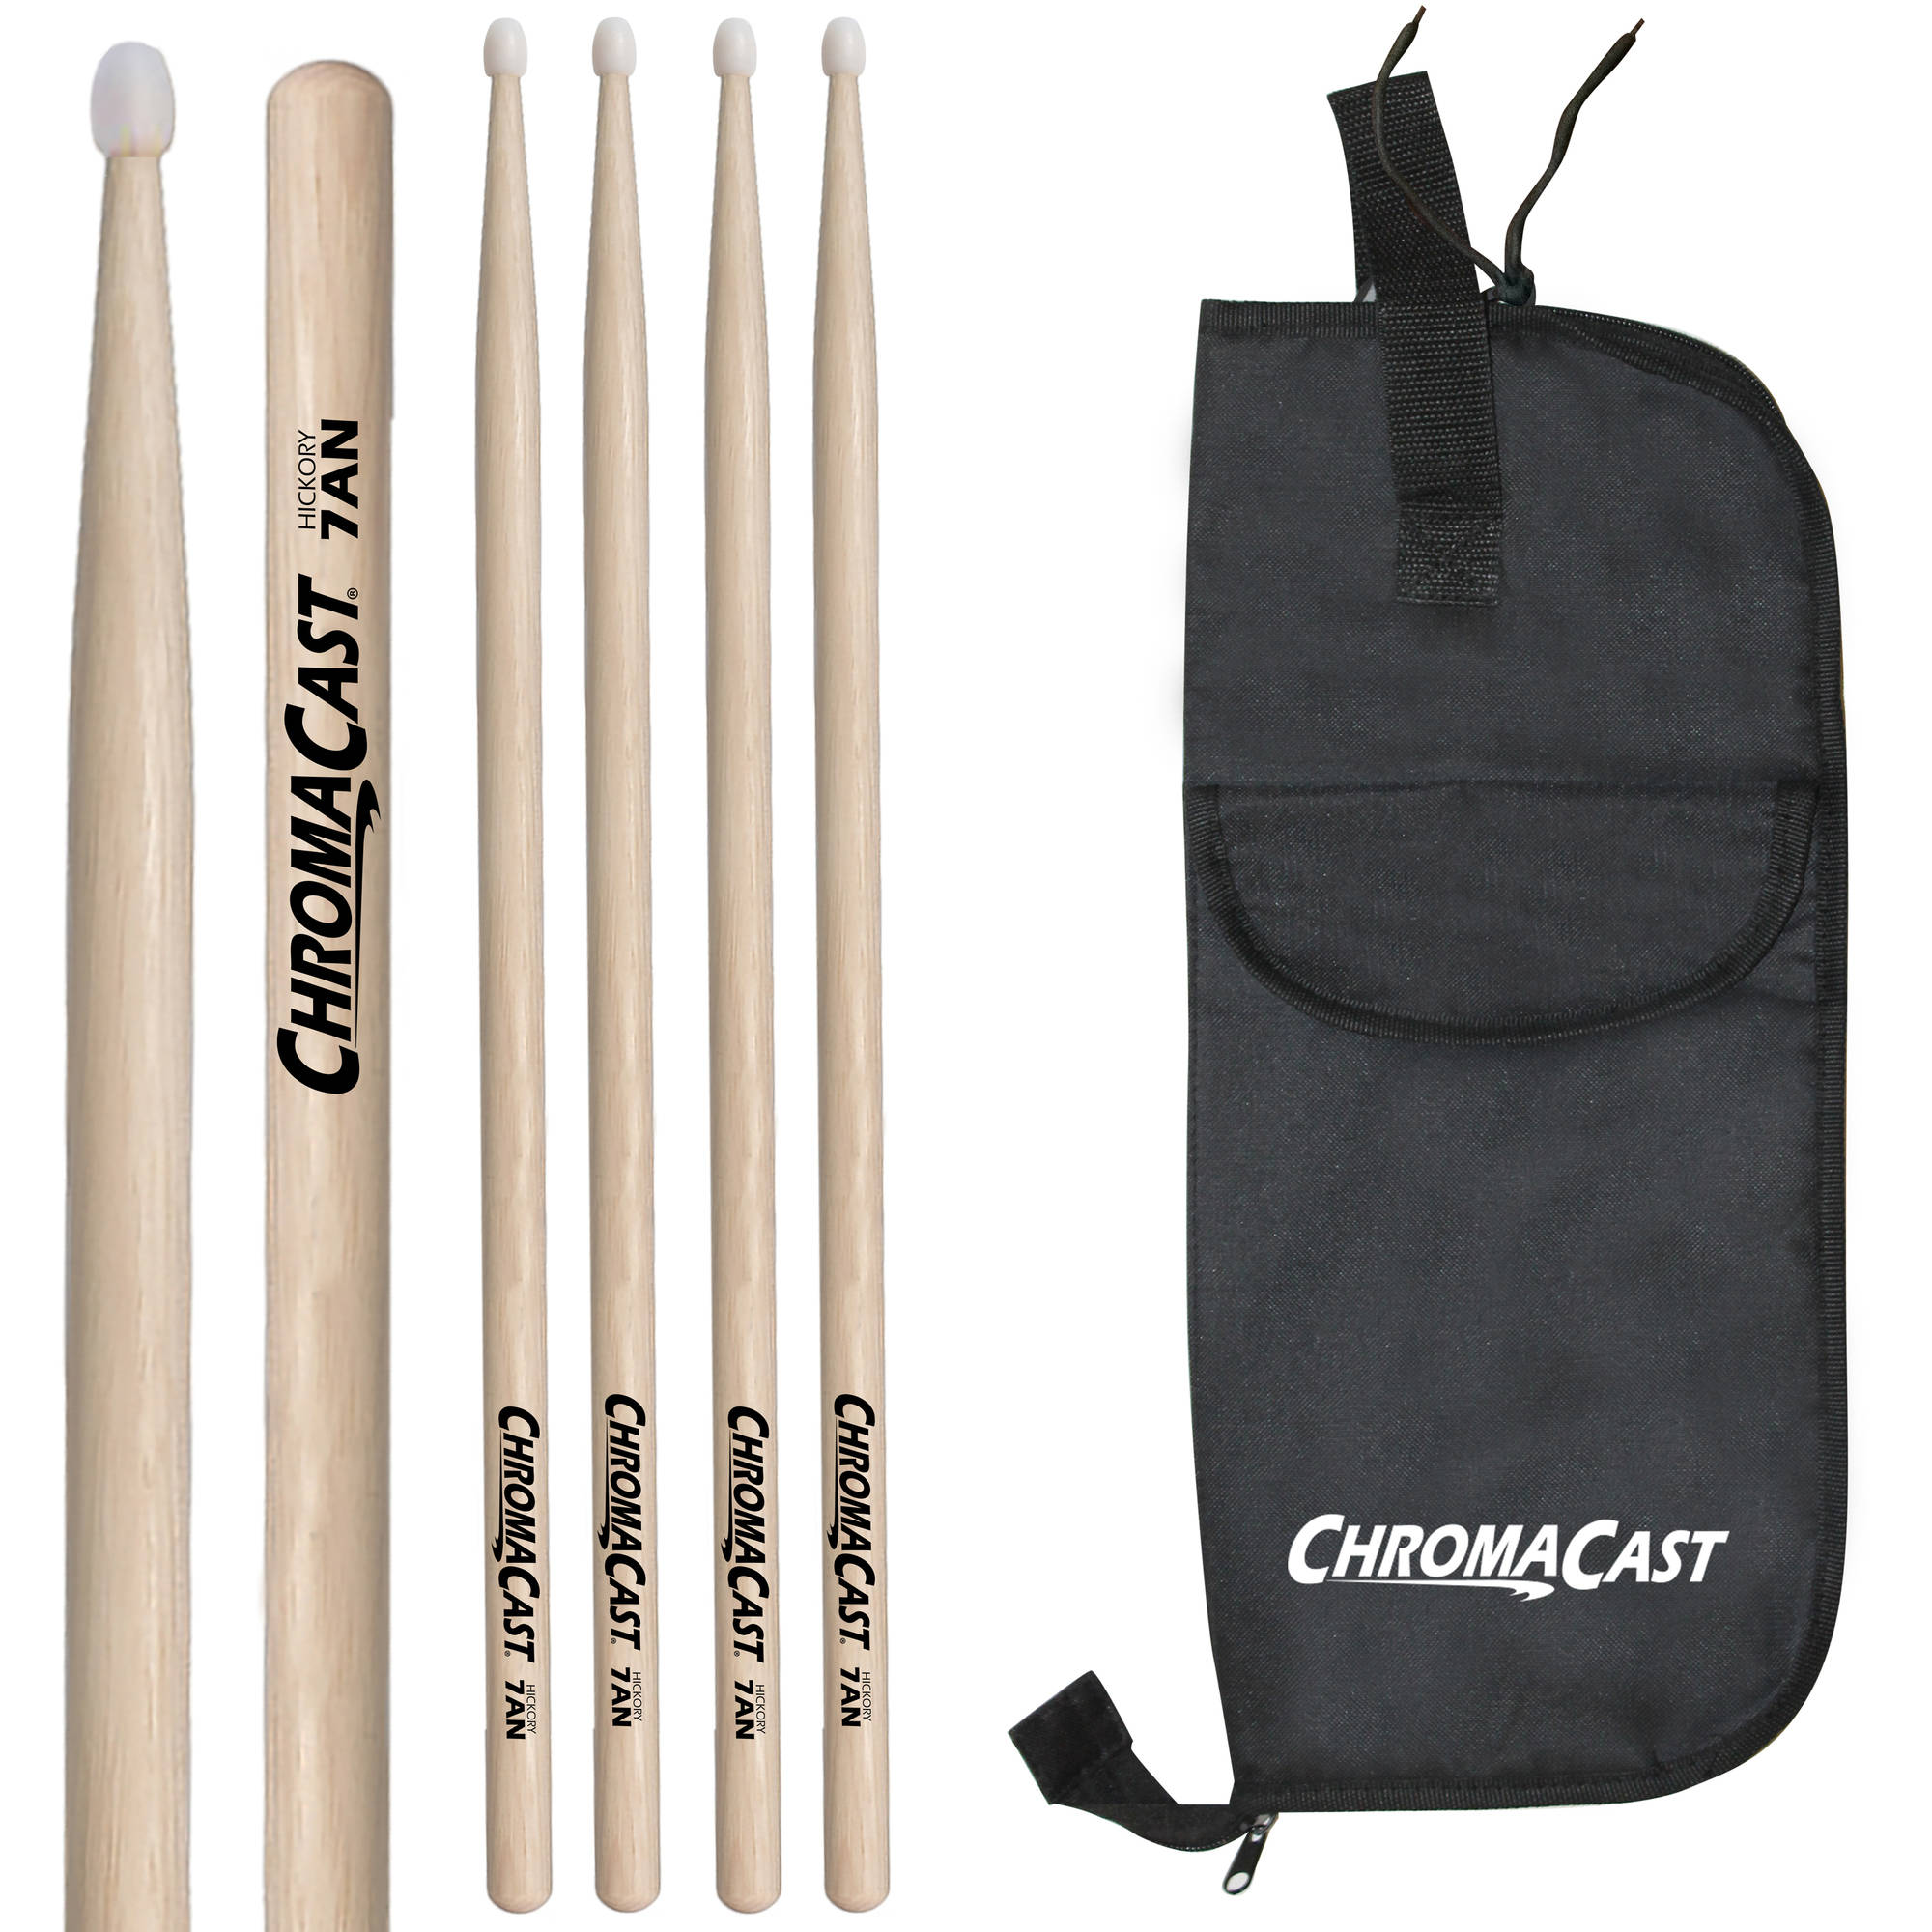 ChromaCast 5A Hickory Nylon-Tipped Drumsticks, 3 Pairs with Drumstick Bag by ChromaCast